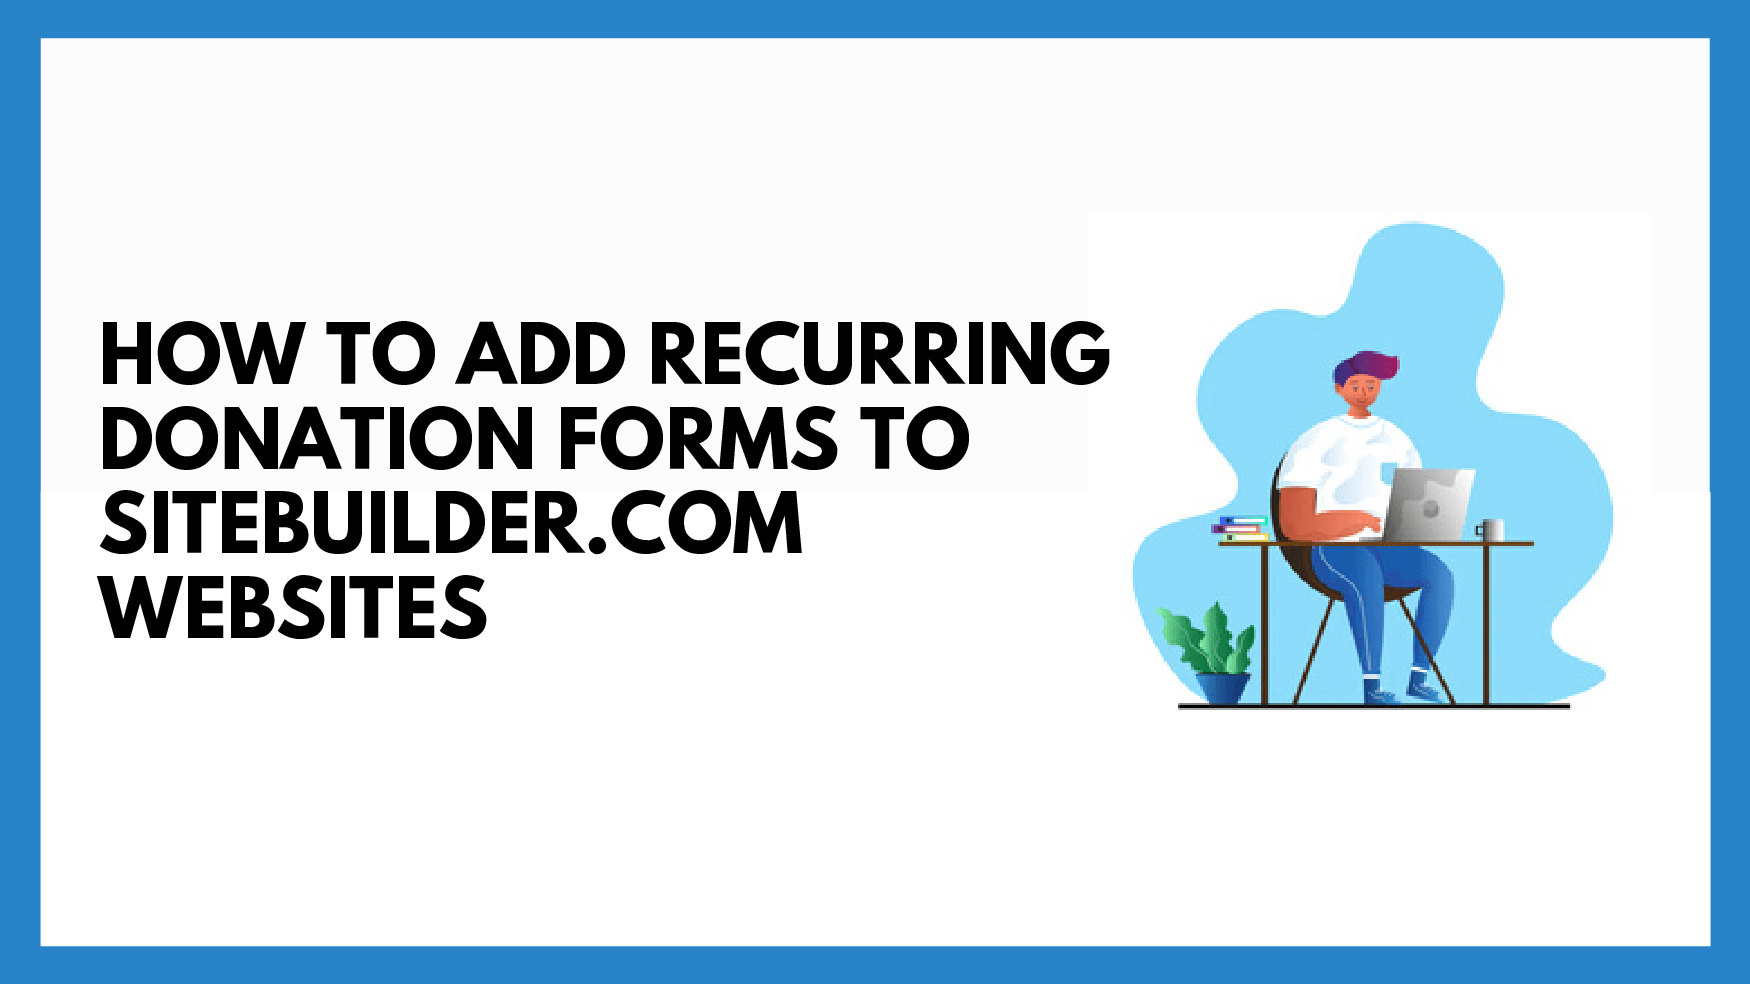 How To Add Recurring Donation Forms to SiteBuilder.com Websites